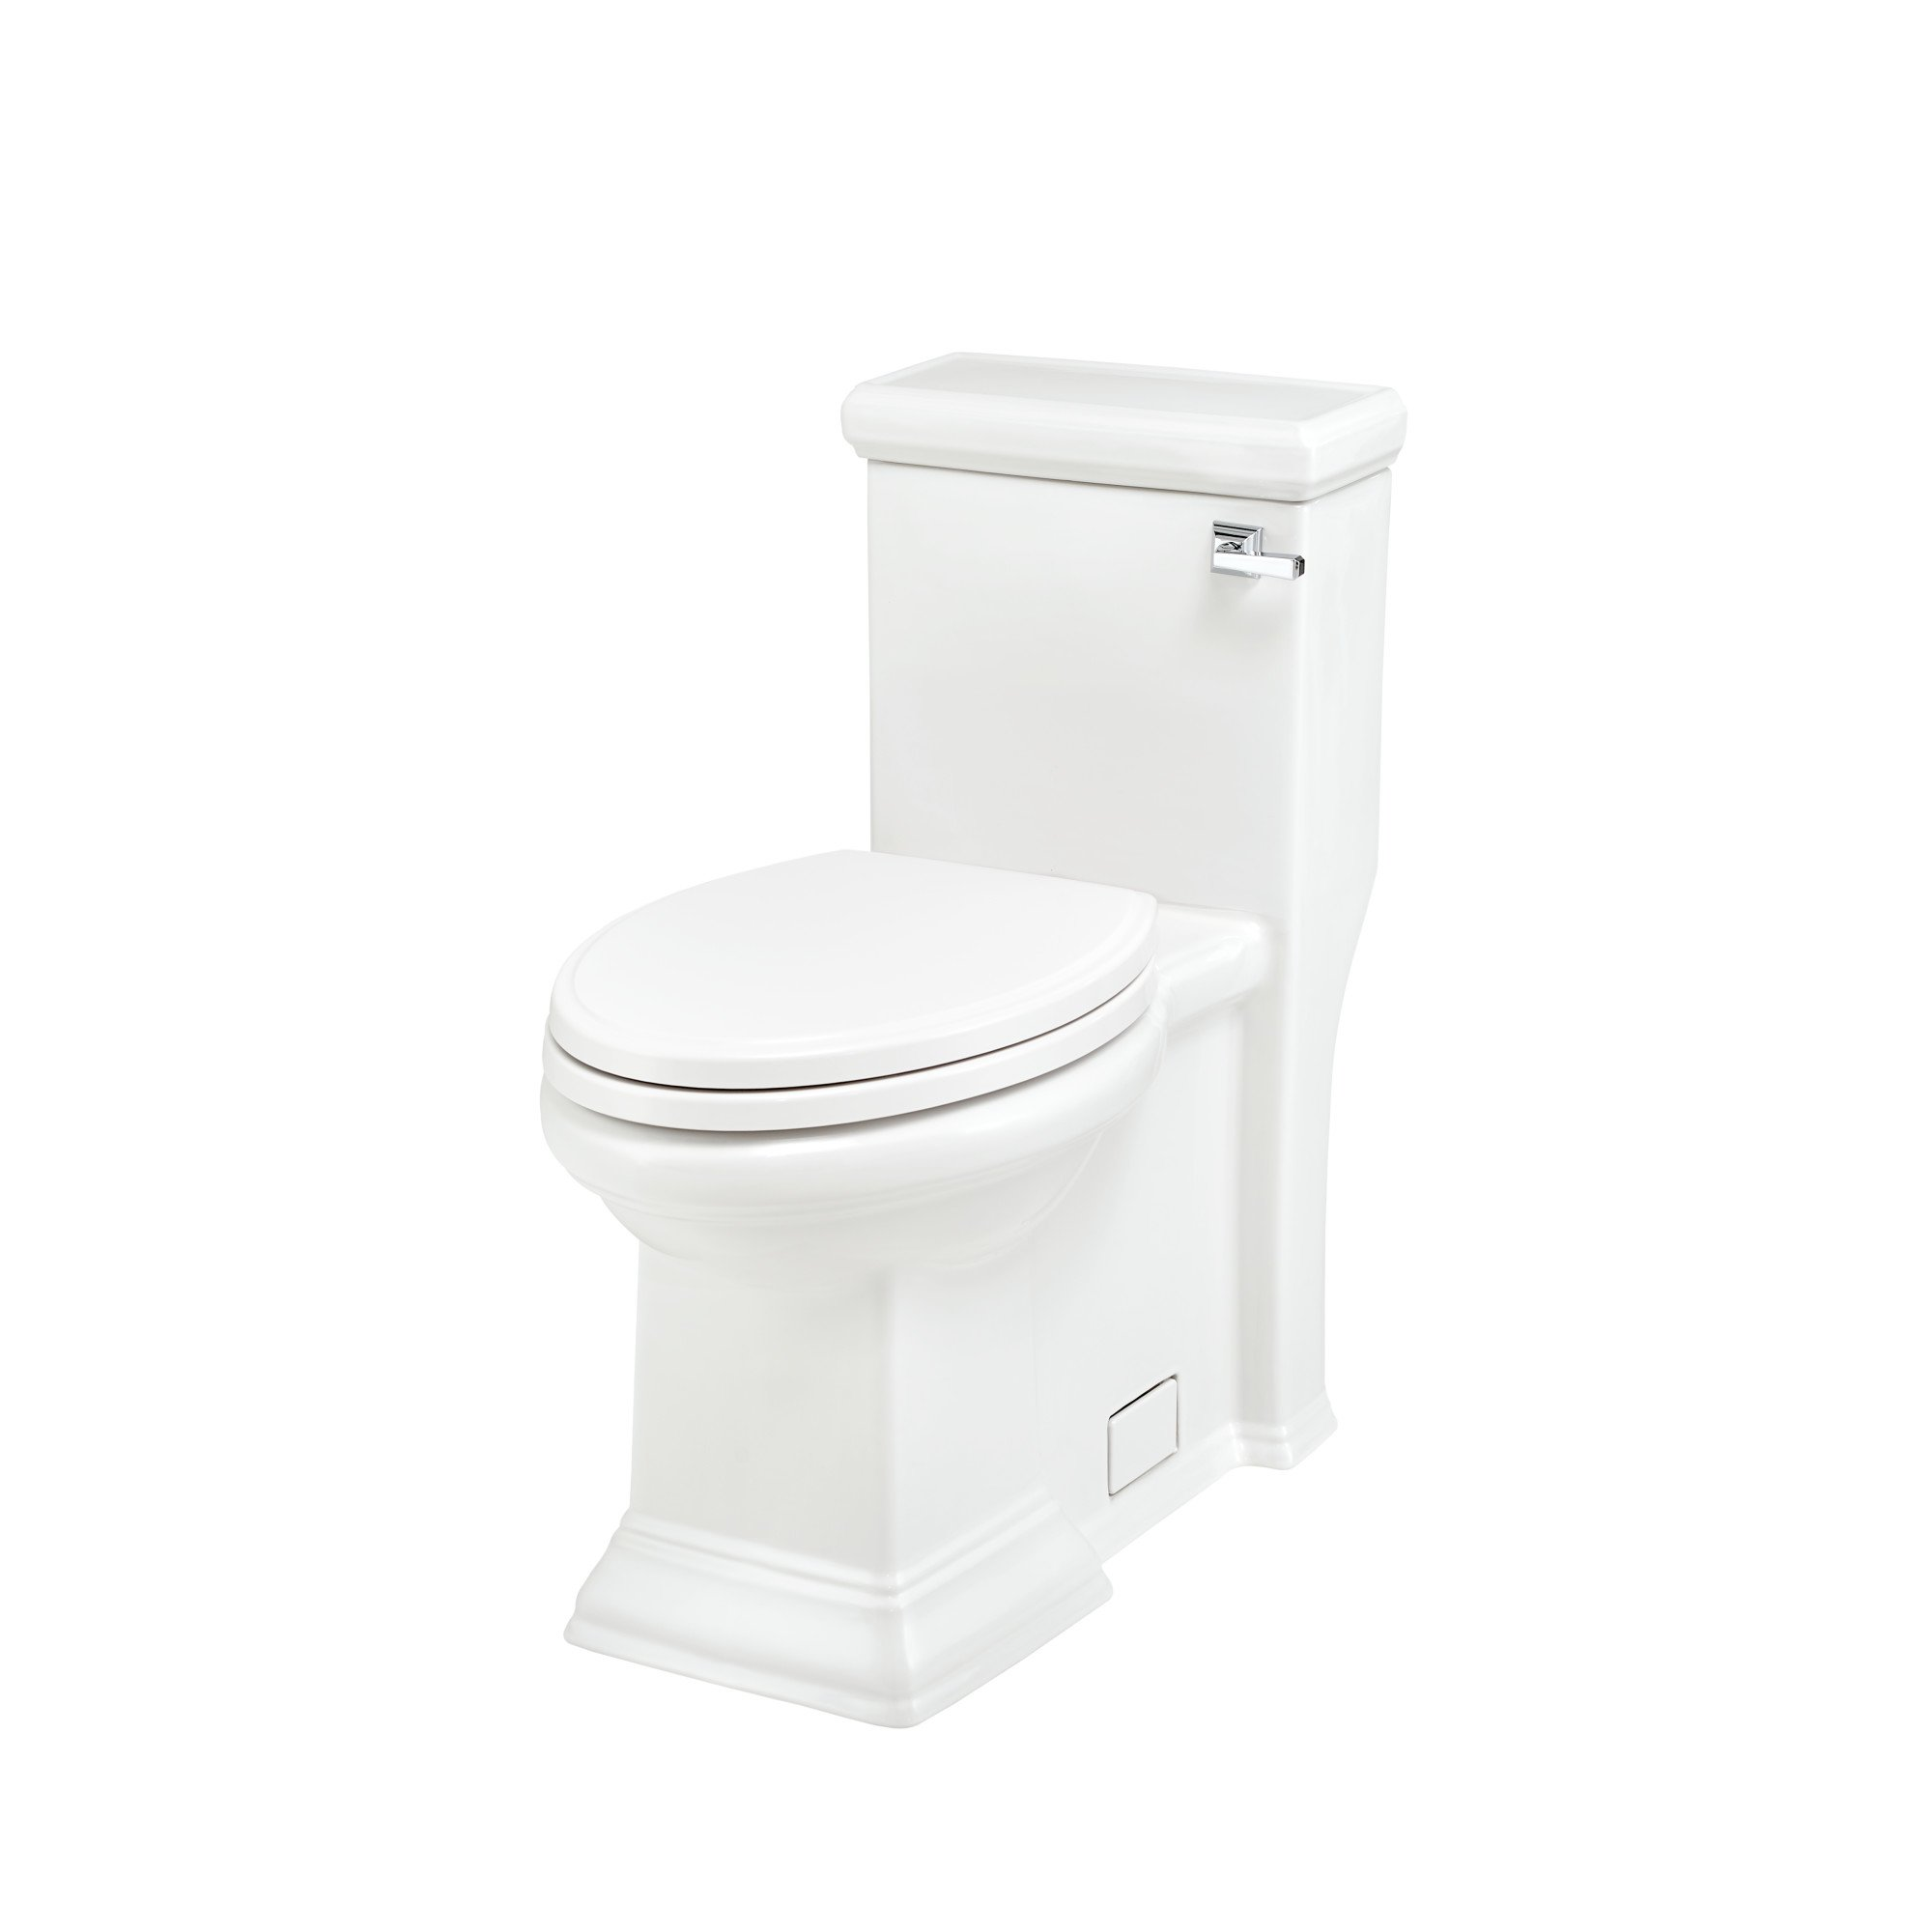 American Standard 2847813.020 Town Square Right Height Elongated One-Piece Toilet with Seat, White